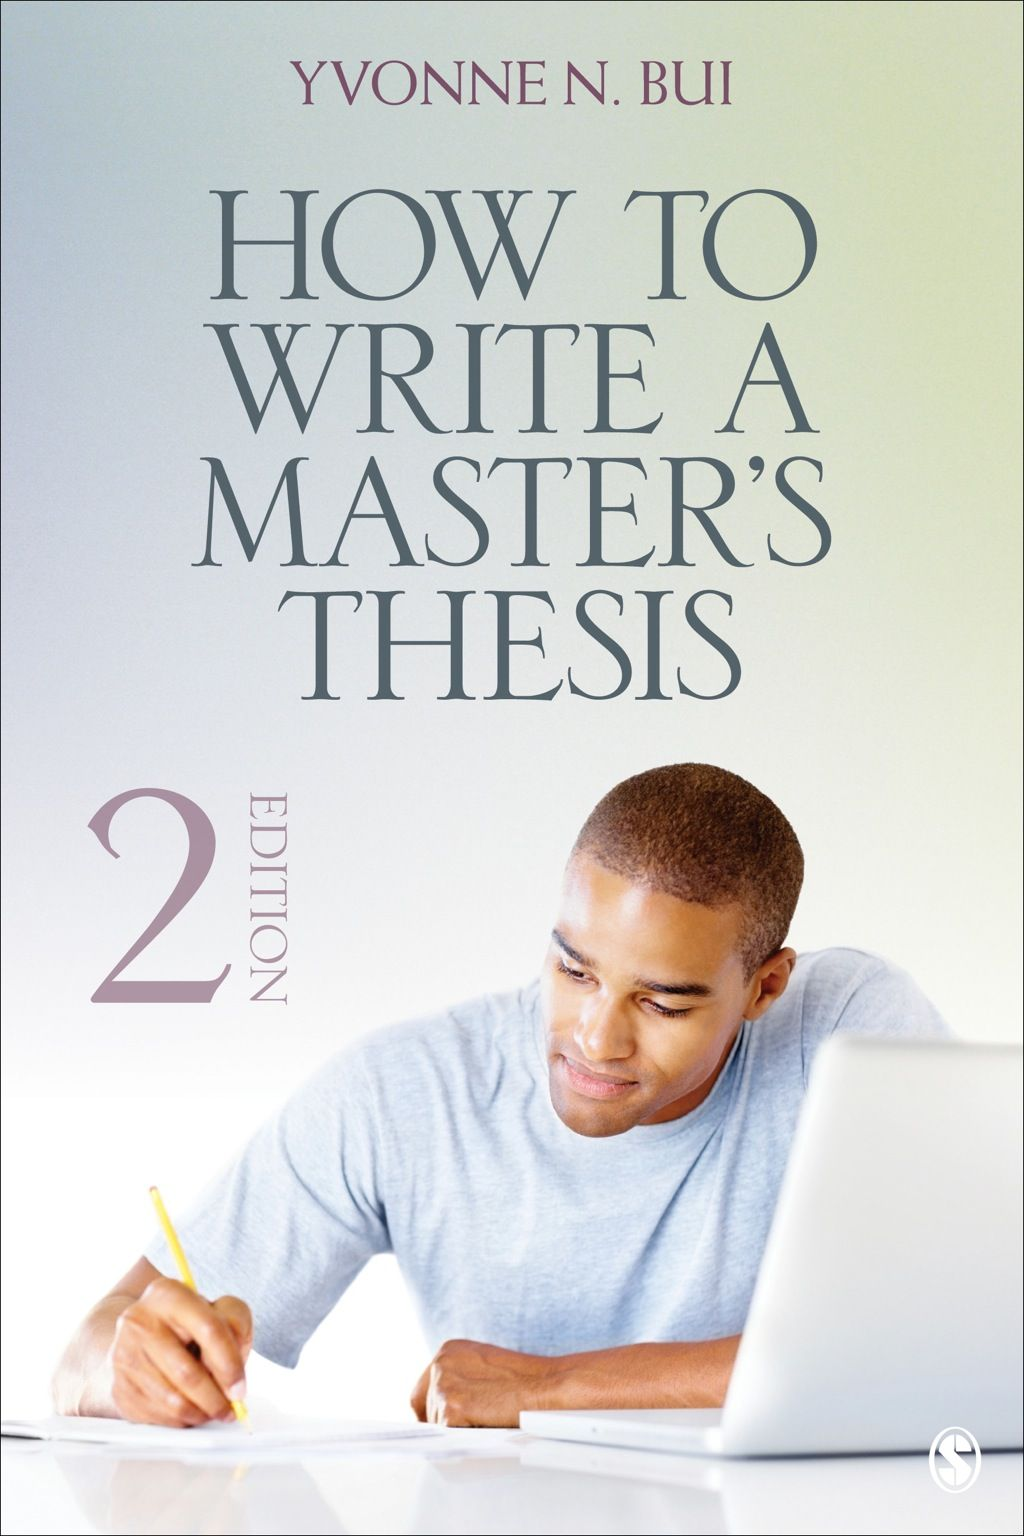 Pay for master thesis